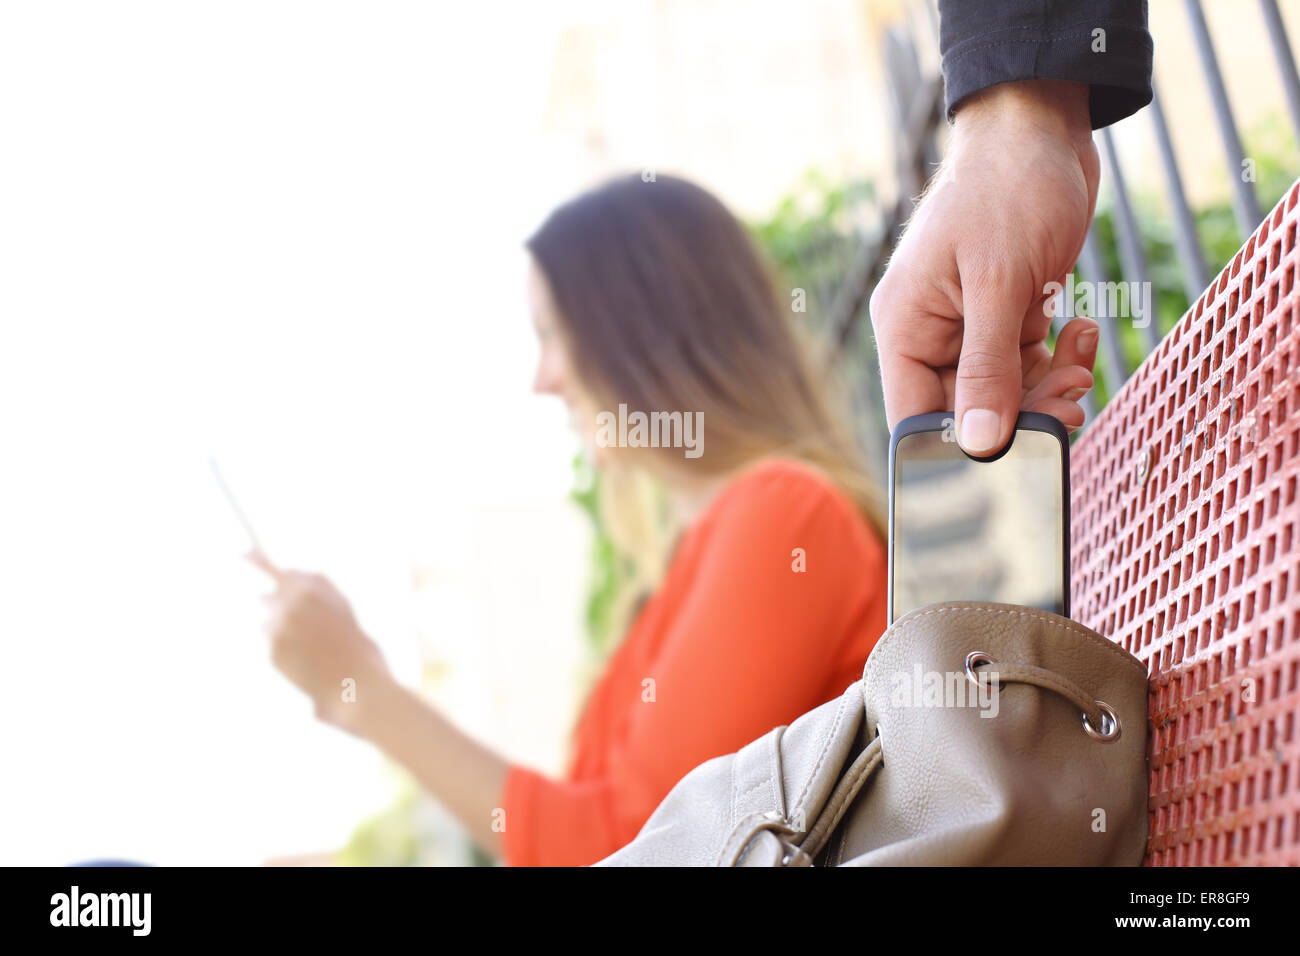 Thief stealing a mobile phone to a woman sitting on a bench in a park - Stock Image